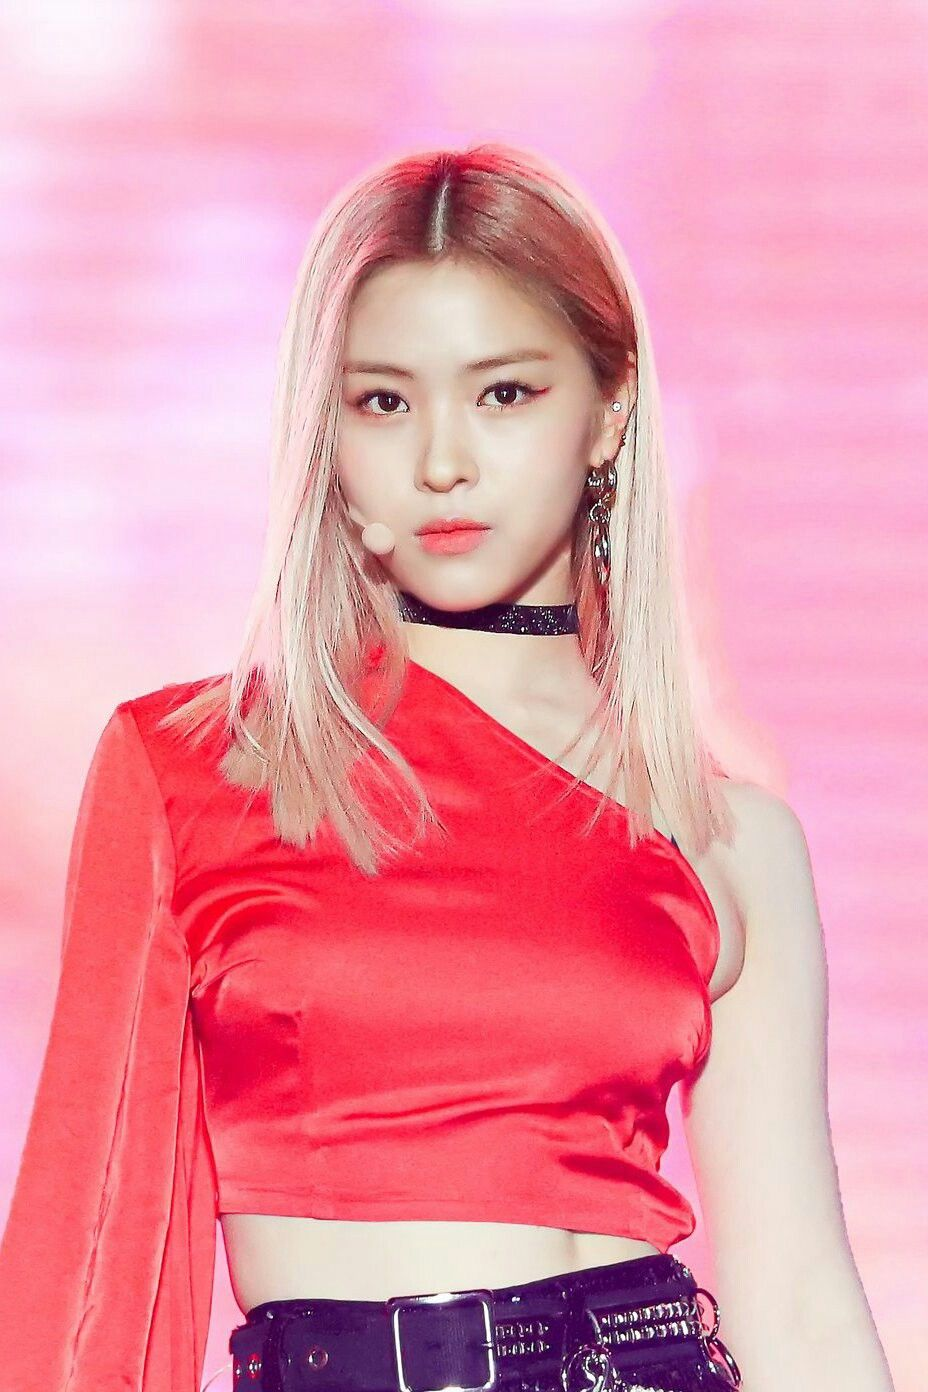 191126 Itzy At Asia Artist Awards Aaa 2019 In Vietnam Outfits Female Superhero Fashion